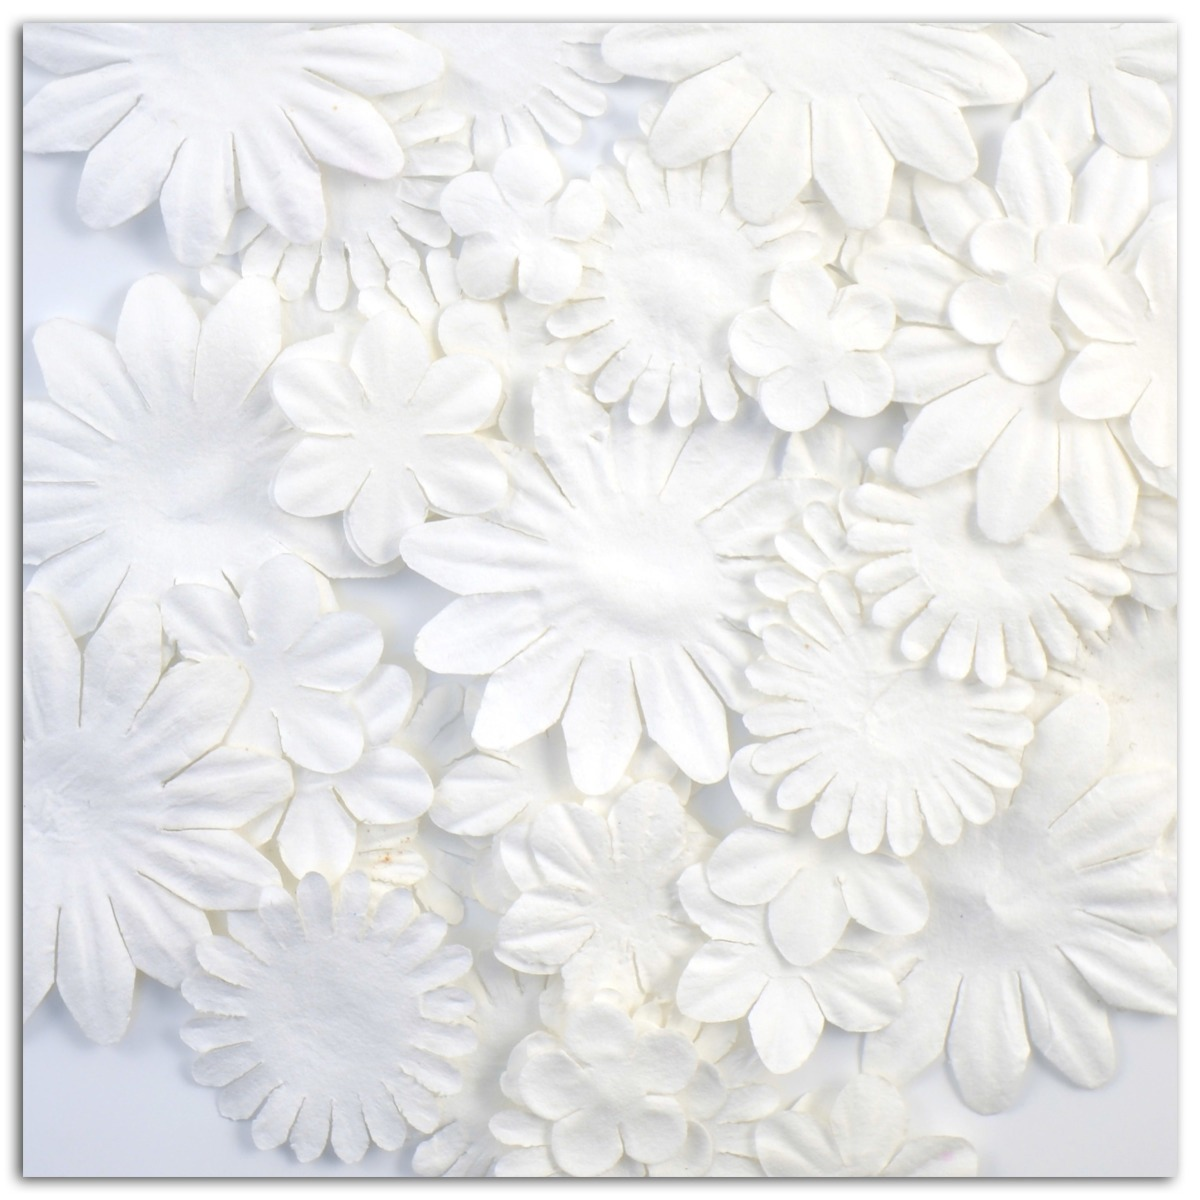 SORTIDO 75 FLORES MIX SHAPES WHITE AA30